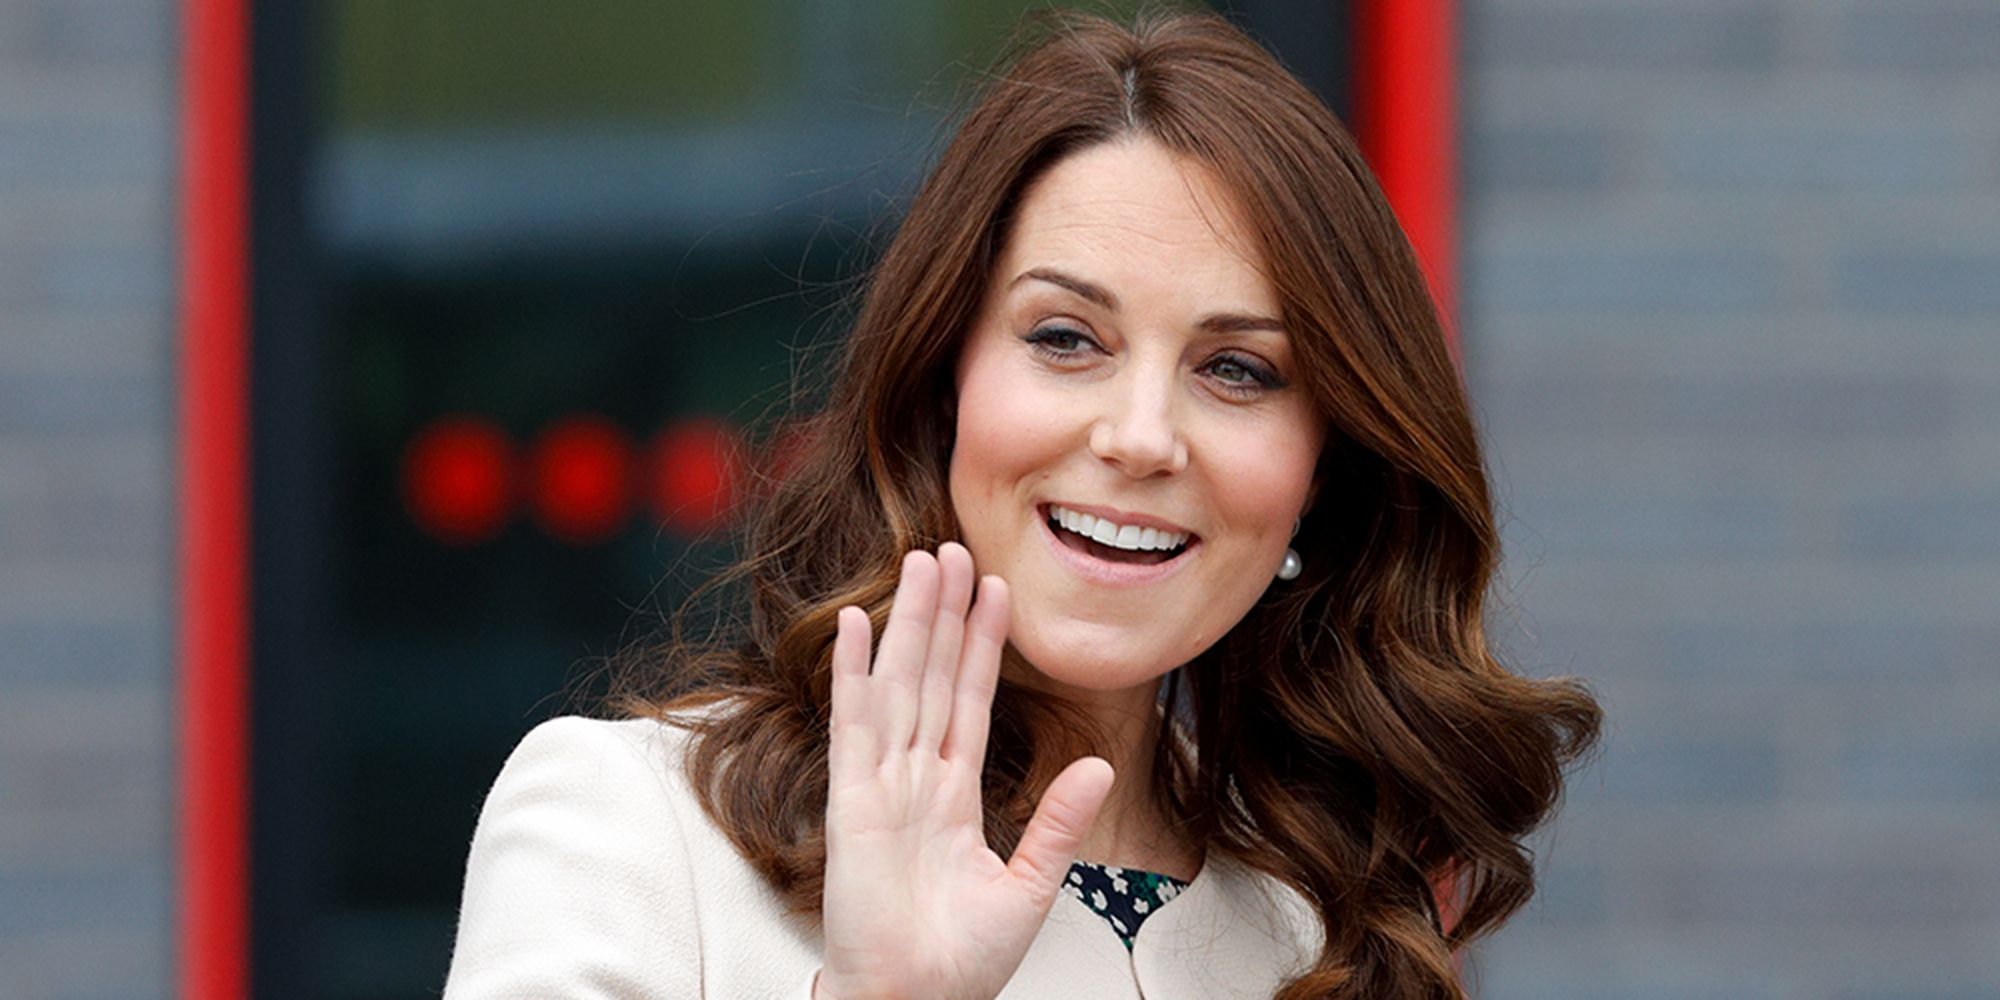 Best Looks: Kate Middleton's Maternity Style